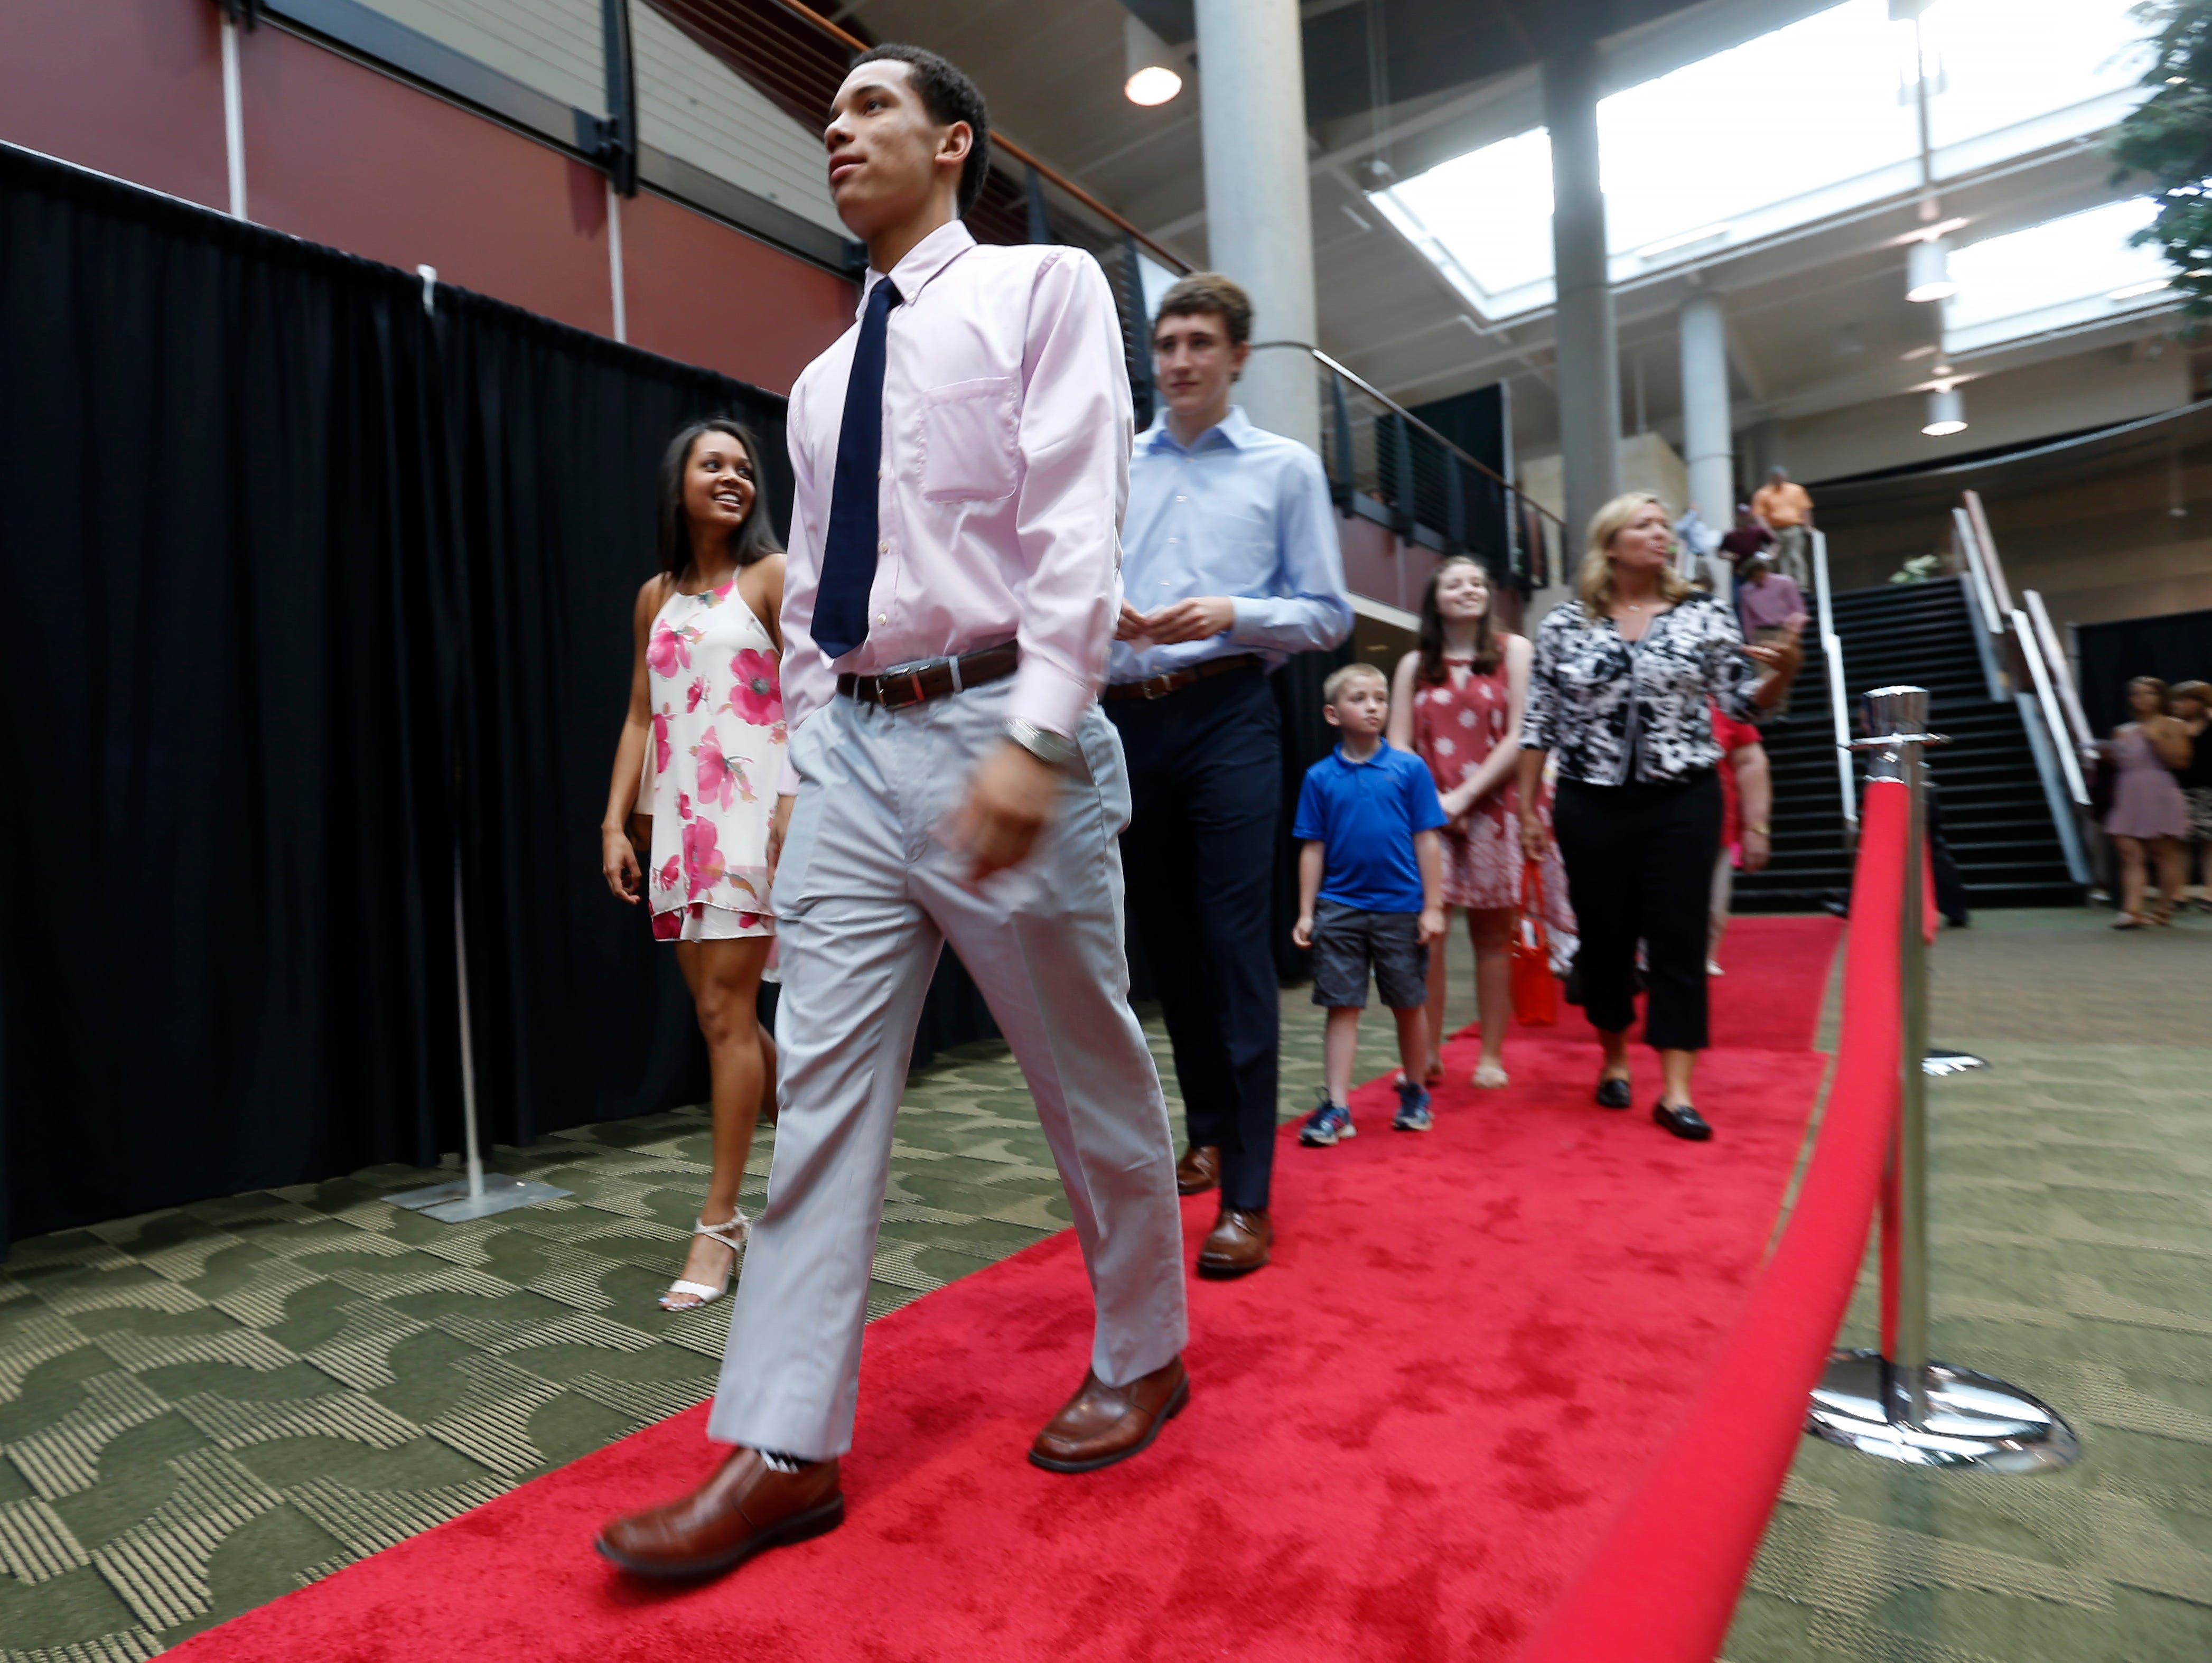 Guests arrive on the red carpet for the 2016 Southwest Missouri Sports Awards at the Springfield Expo Center on Thursday, June 9, 2016.